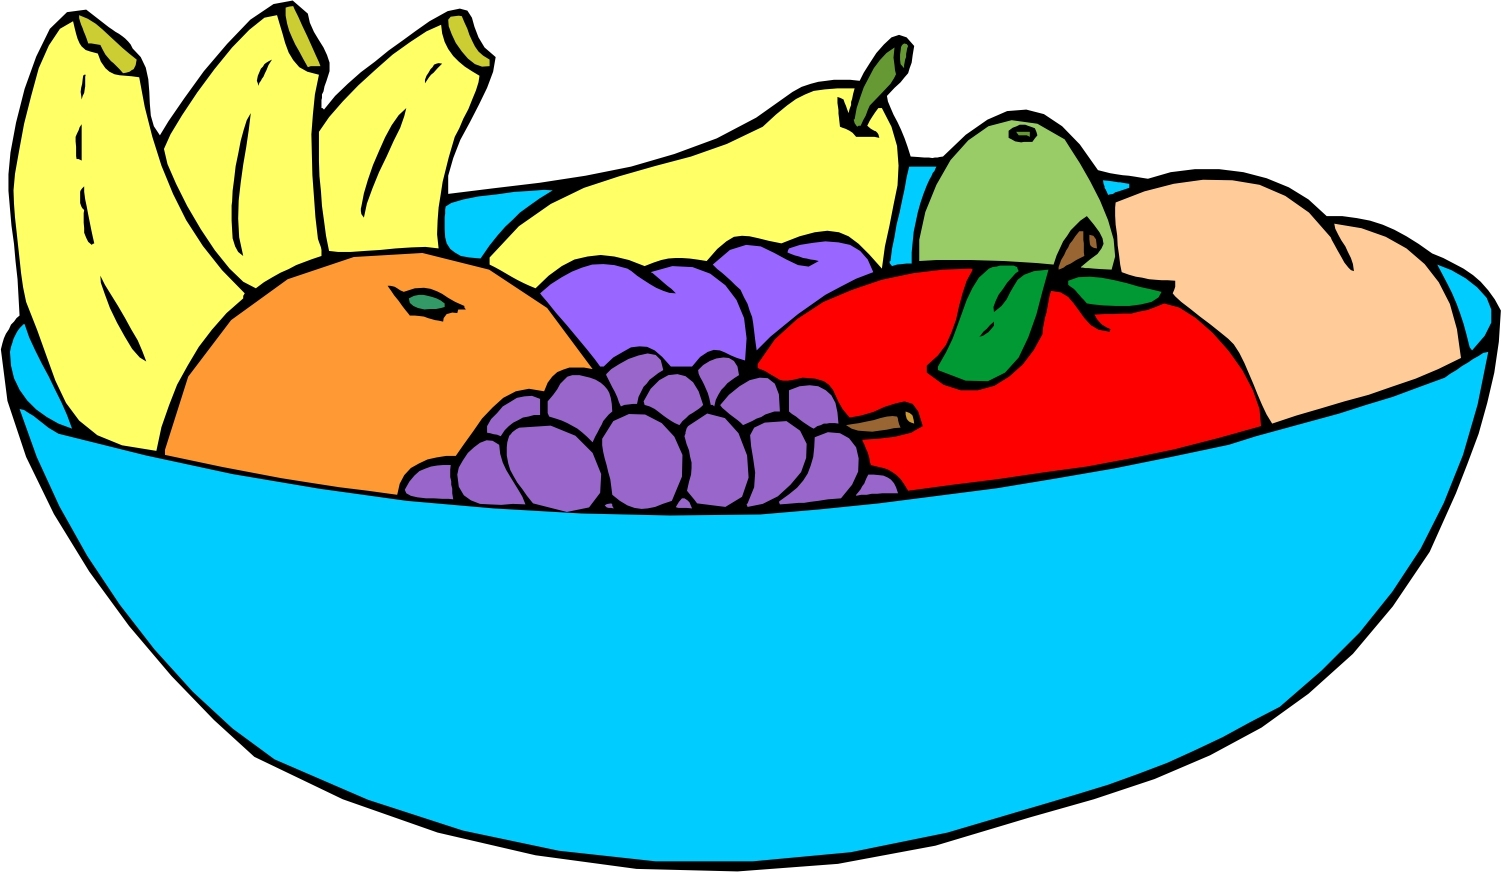 Free tray cliparts download. Fruits clipart fruit platter